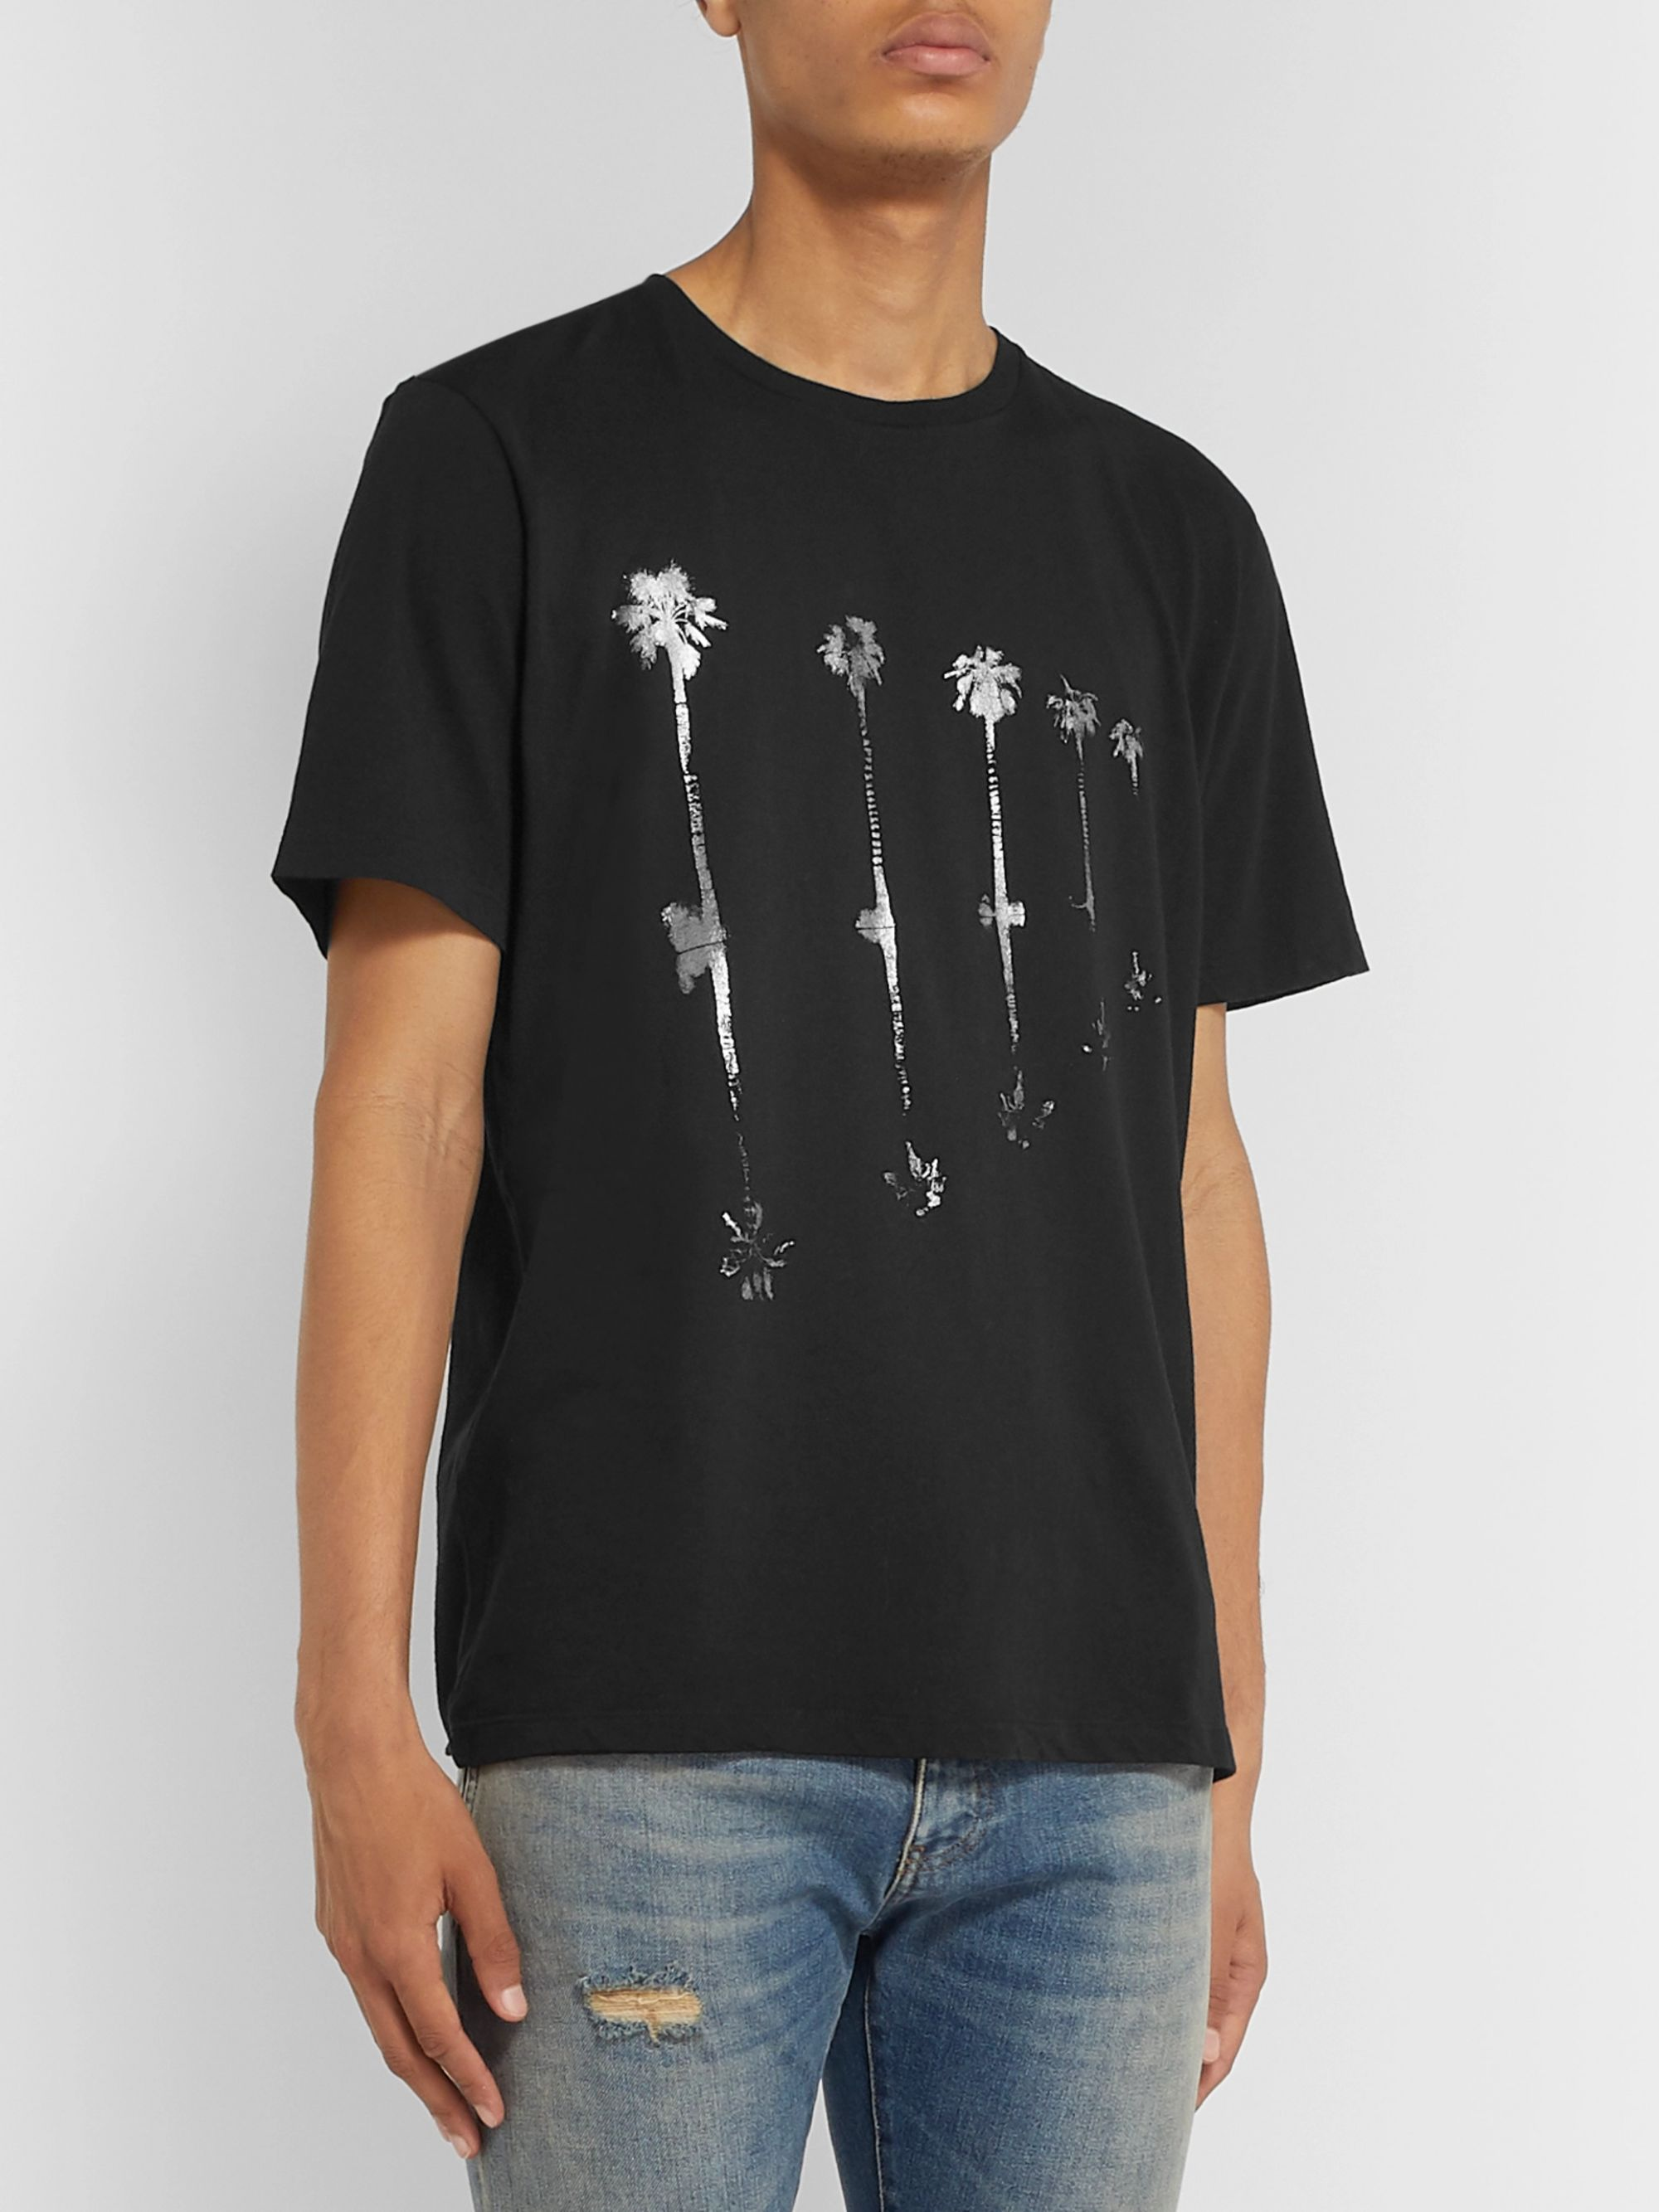 SAINT LAURENT Metallic Printed Cotton-Jersey T-Shirt